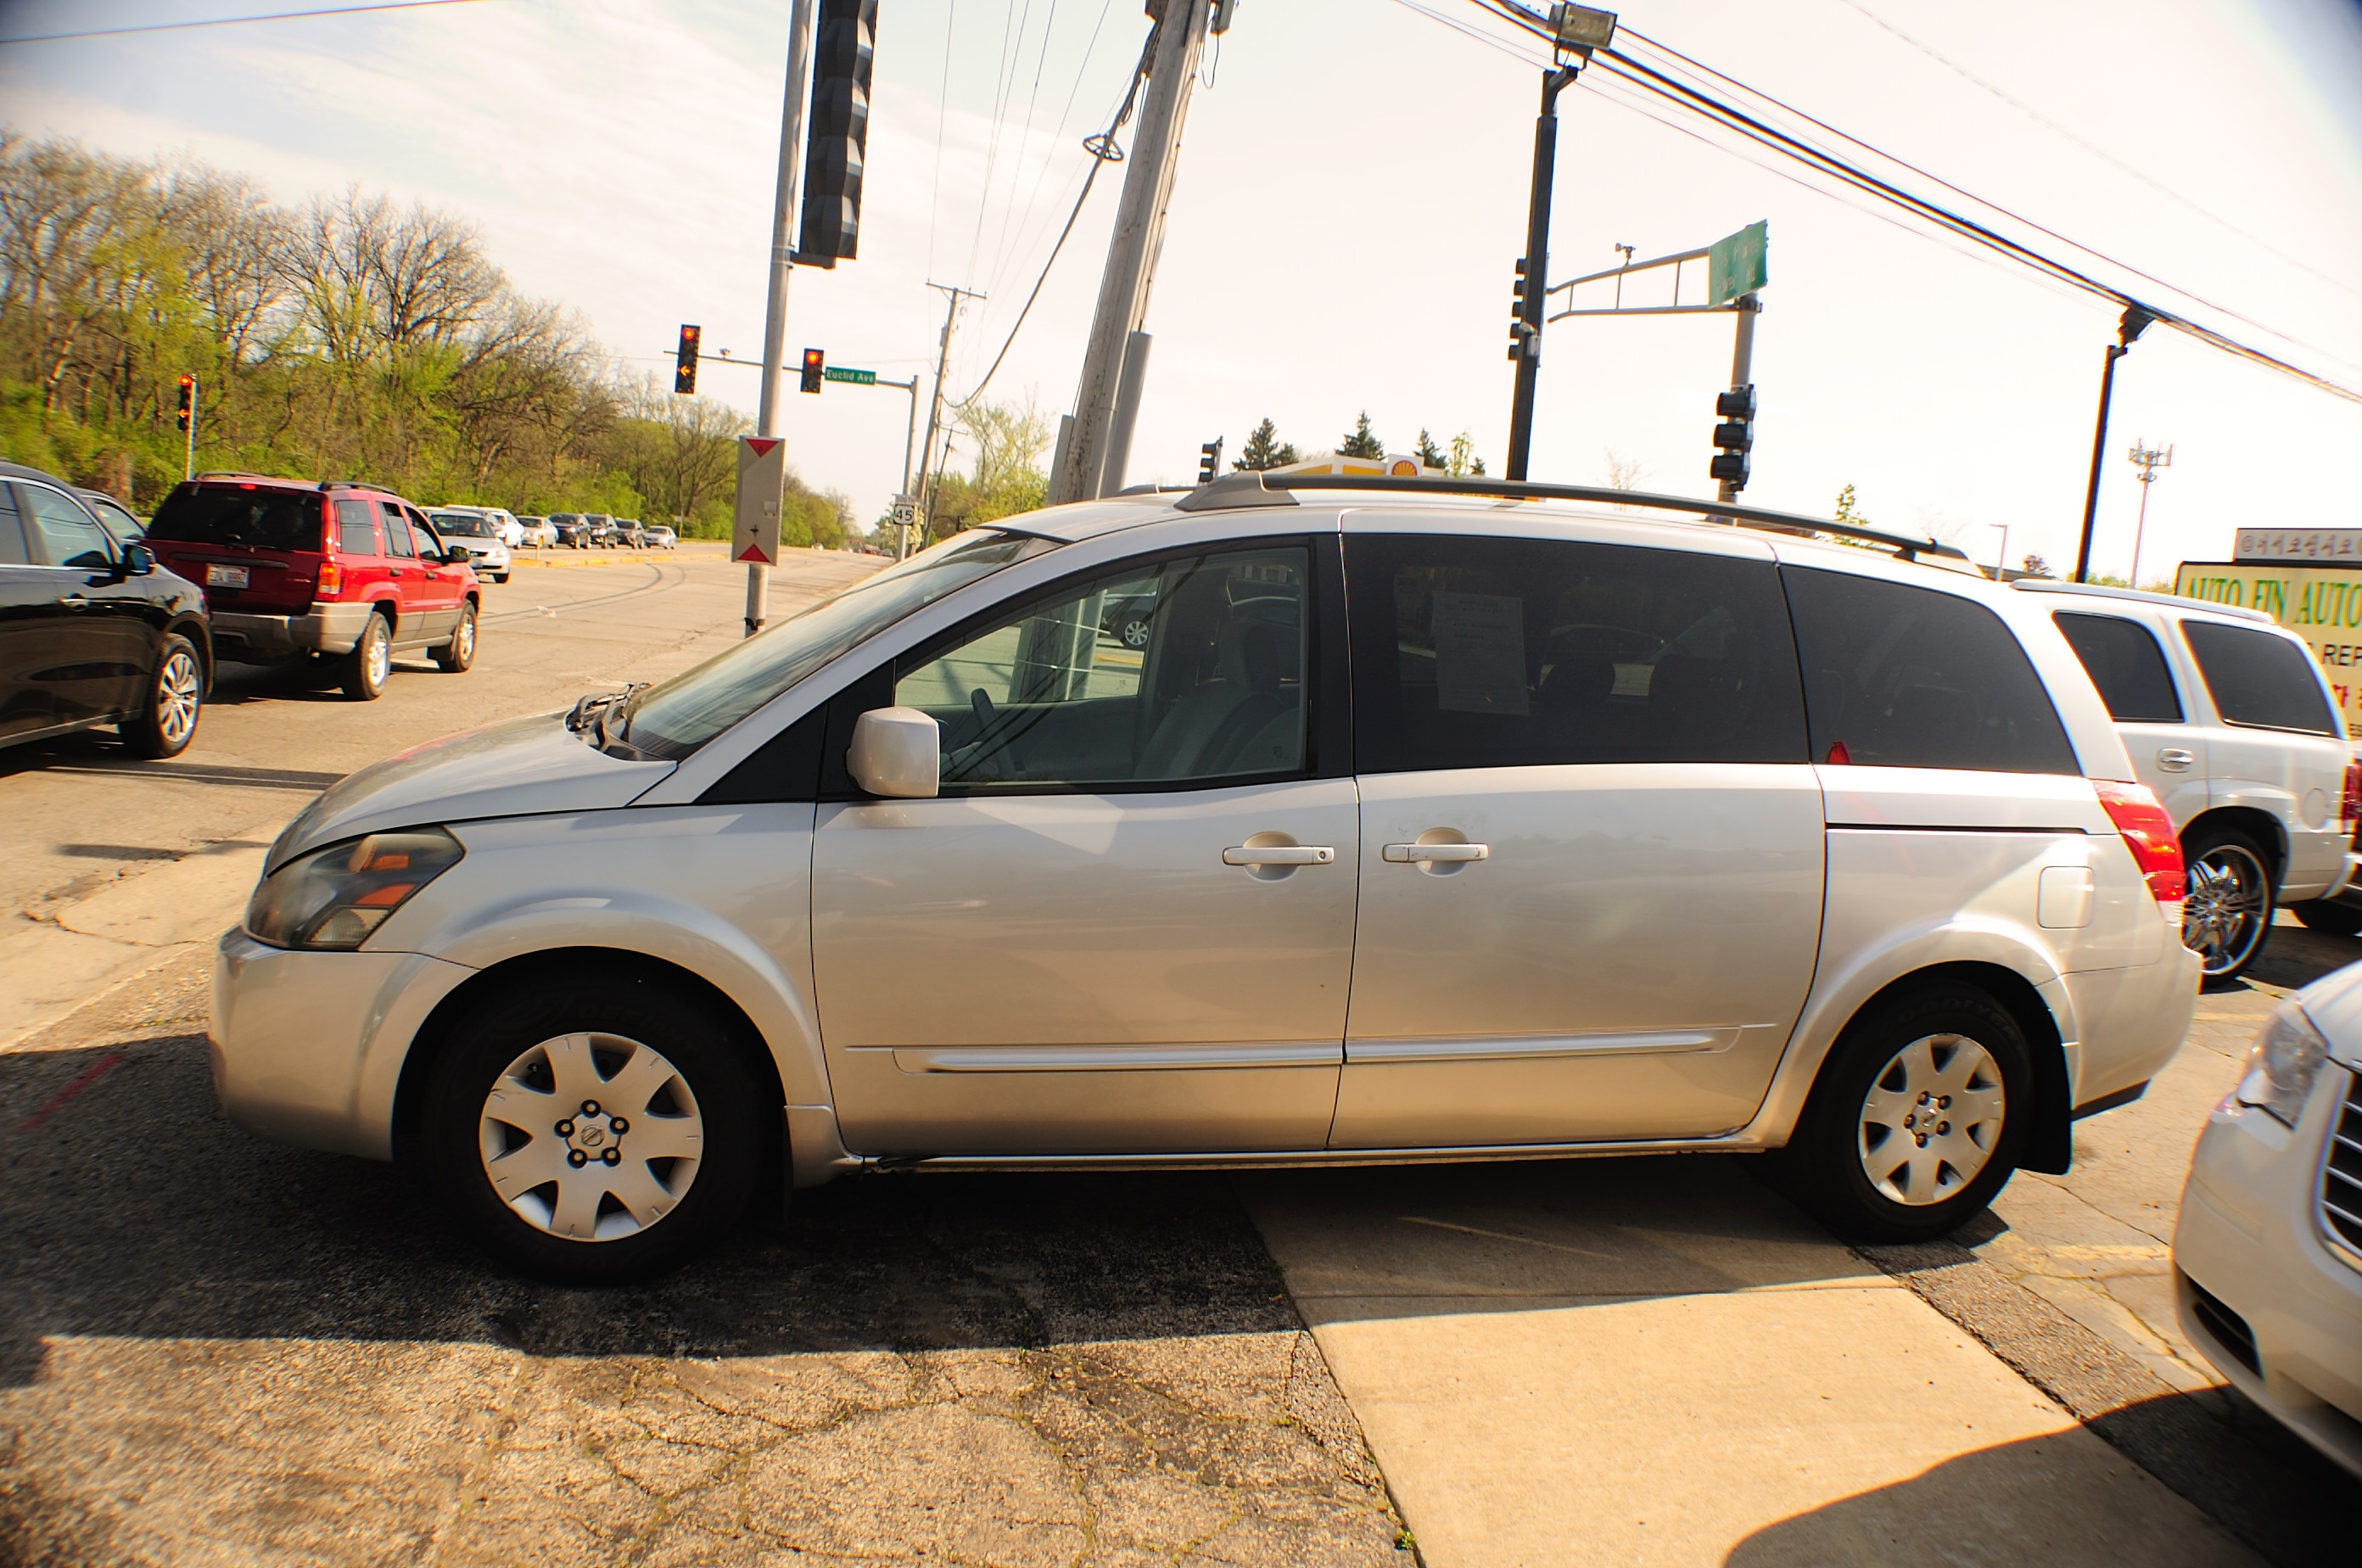 2006 Nissan Quest Silver Used Mini Van used car sale Addison Algonquin Arlington Heights Bartlett